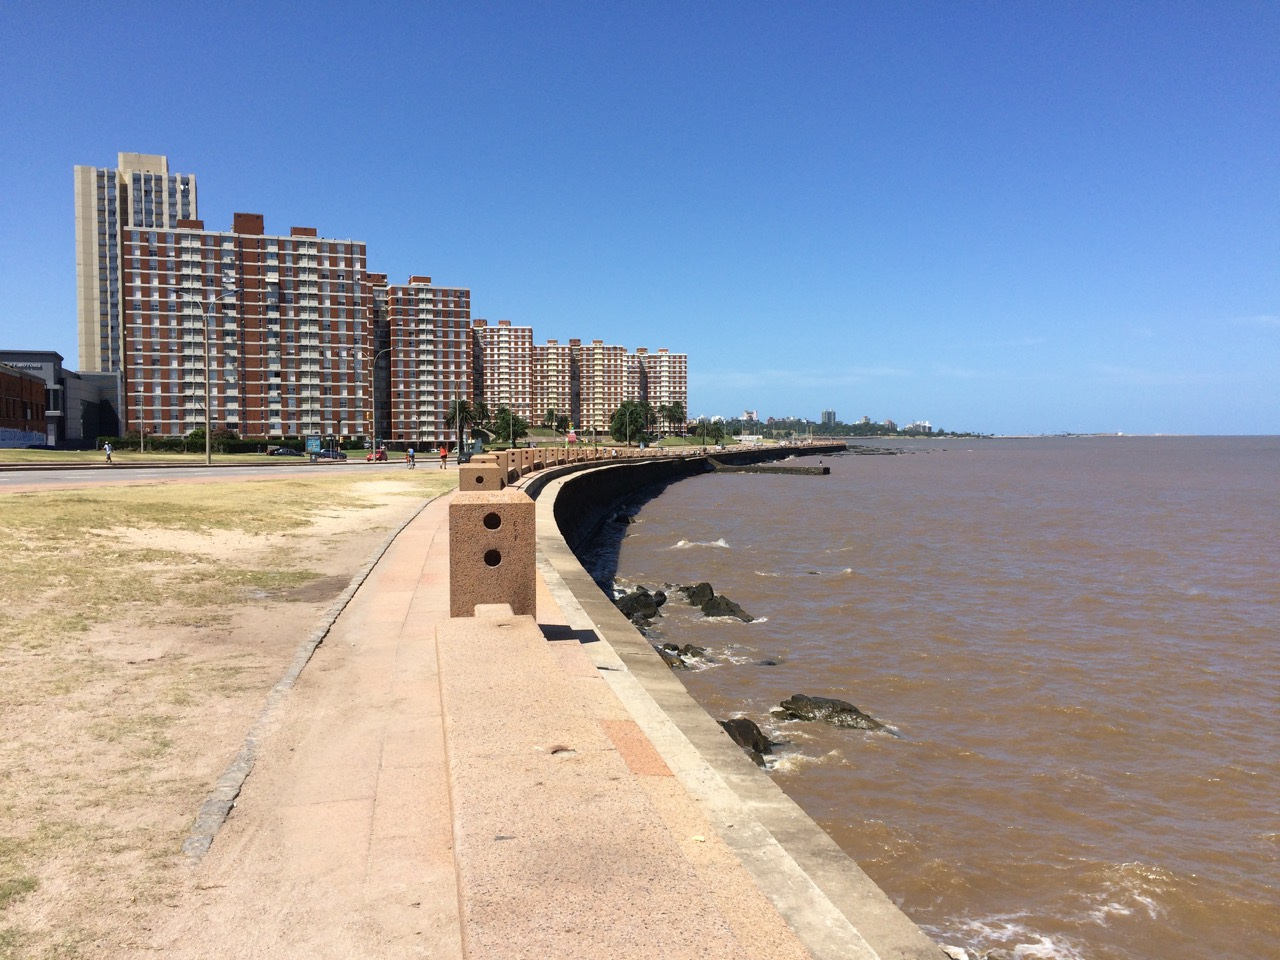 Rambla República Argentina: miles and miles of walking along the water